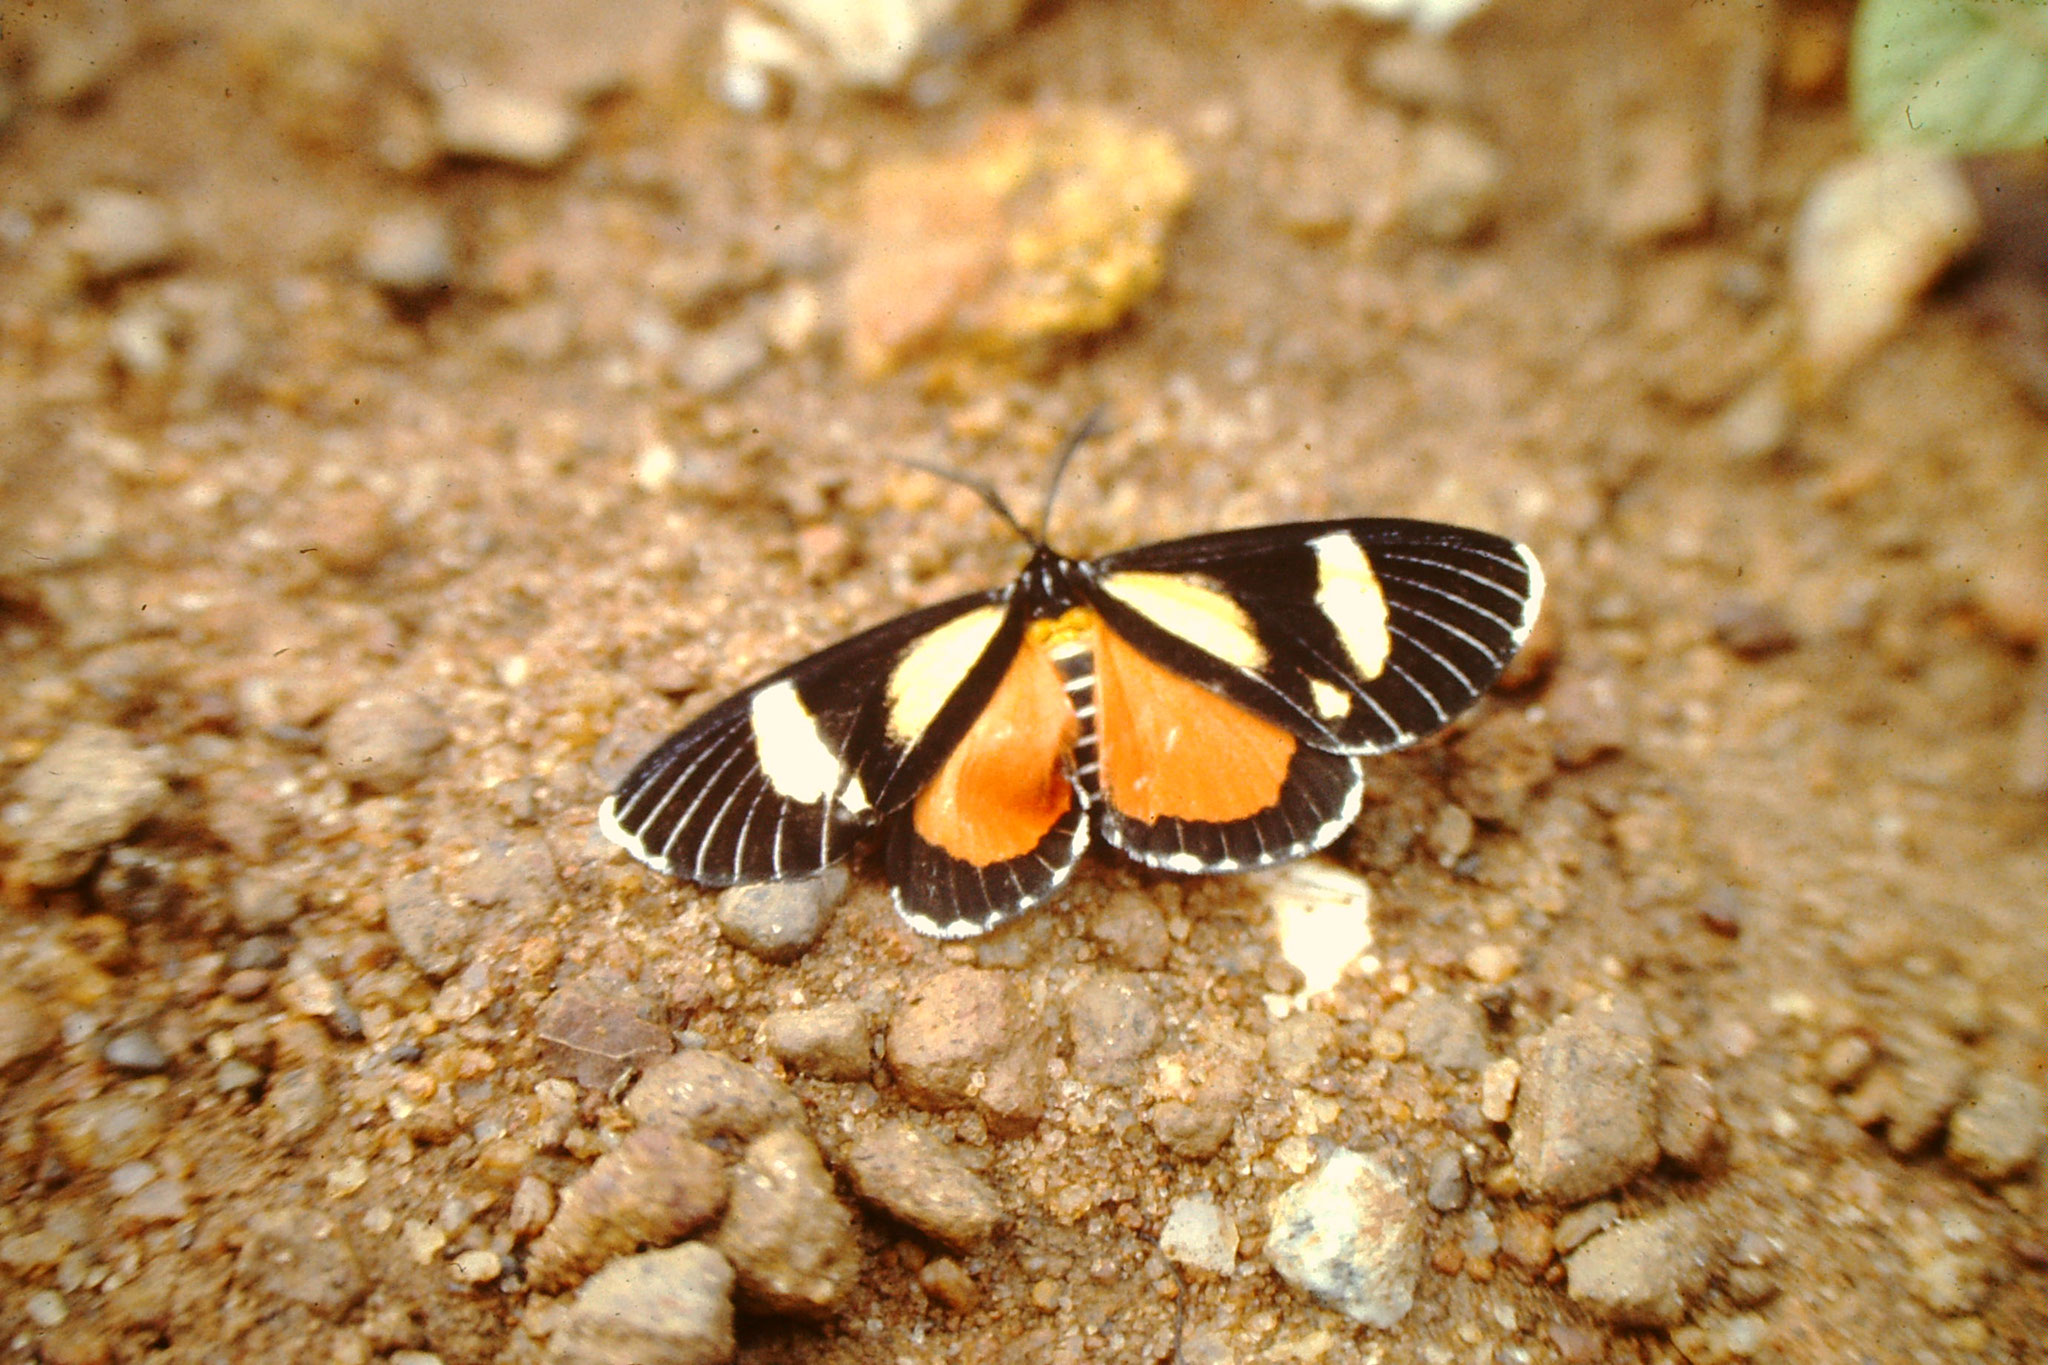 36. Schmetterling